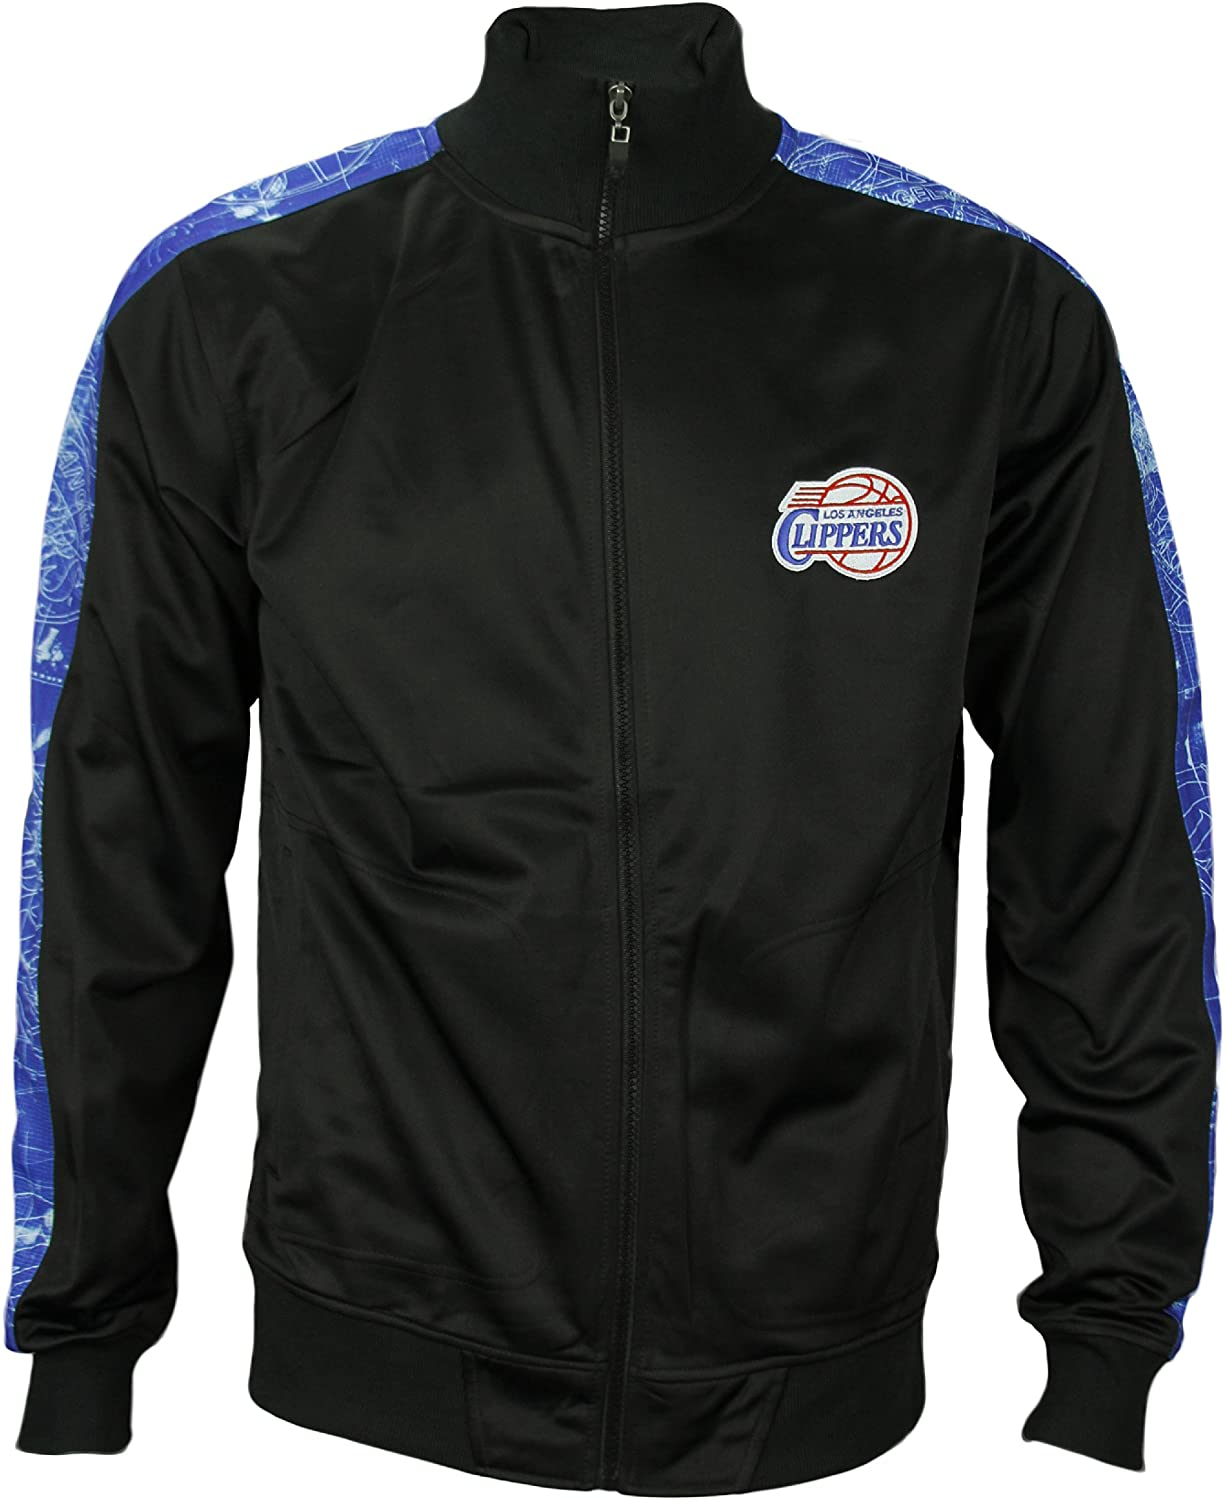 Zipway Los Angeles Clippers NBA Mens Blue Print Track Jacket - Black